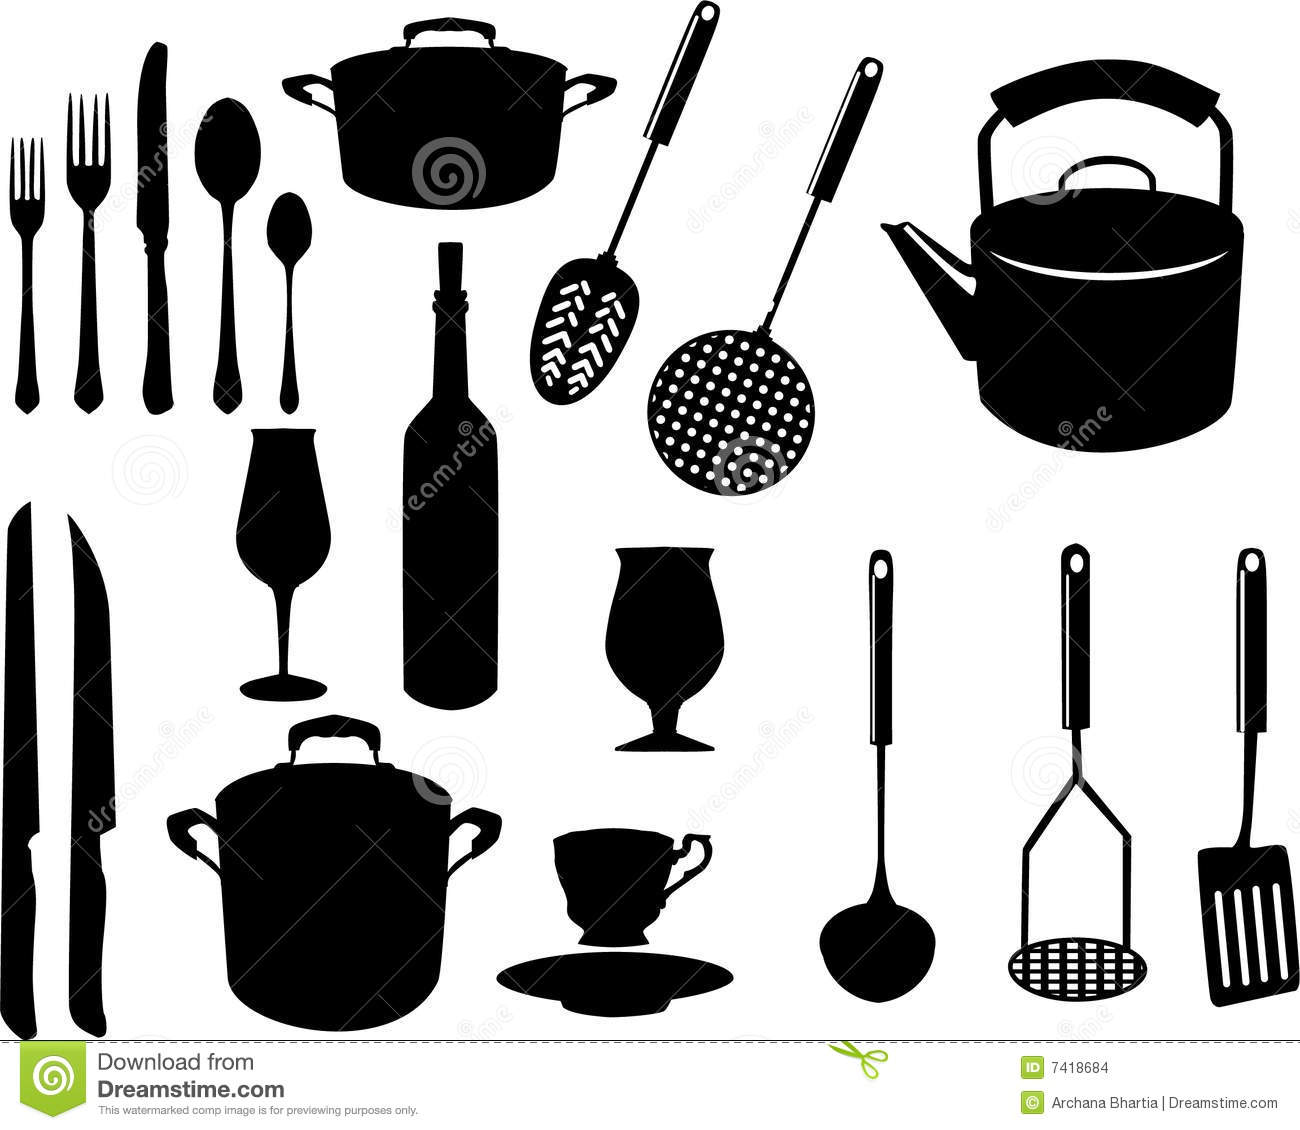 Ustensiles divers de cuisine illustration de vecteur for Ustensils cuisine